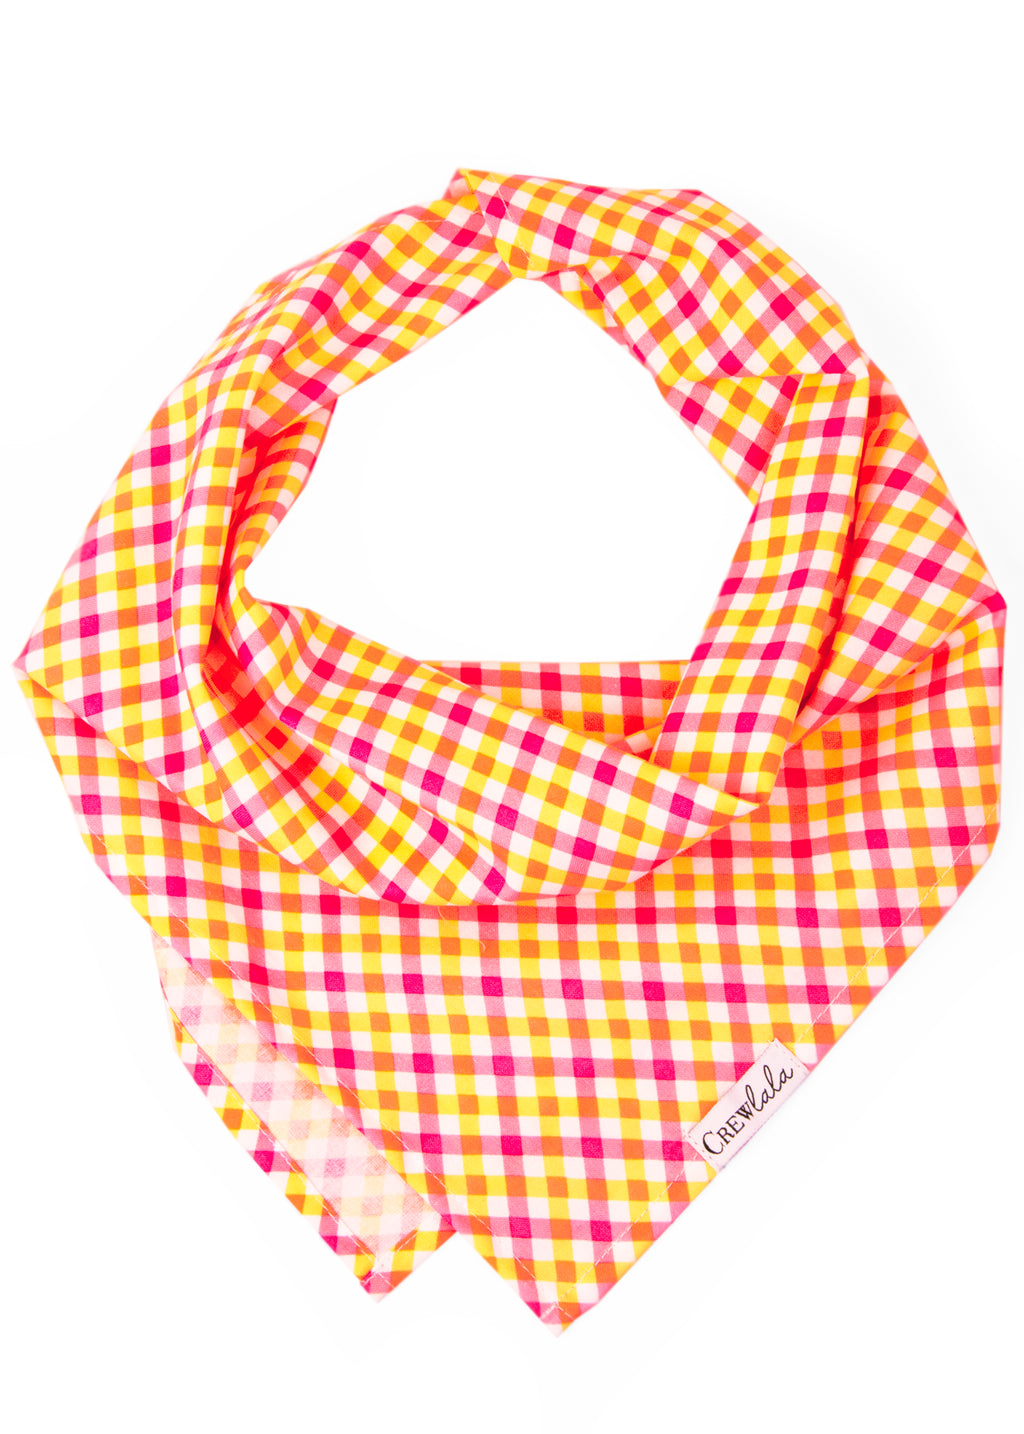 SALE BANDANA - Sweet Tart Plaid Dog Bandana